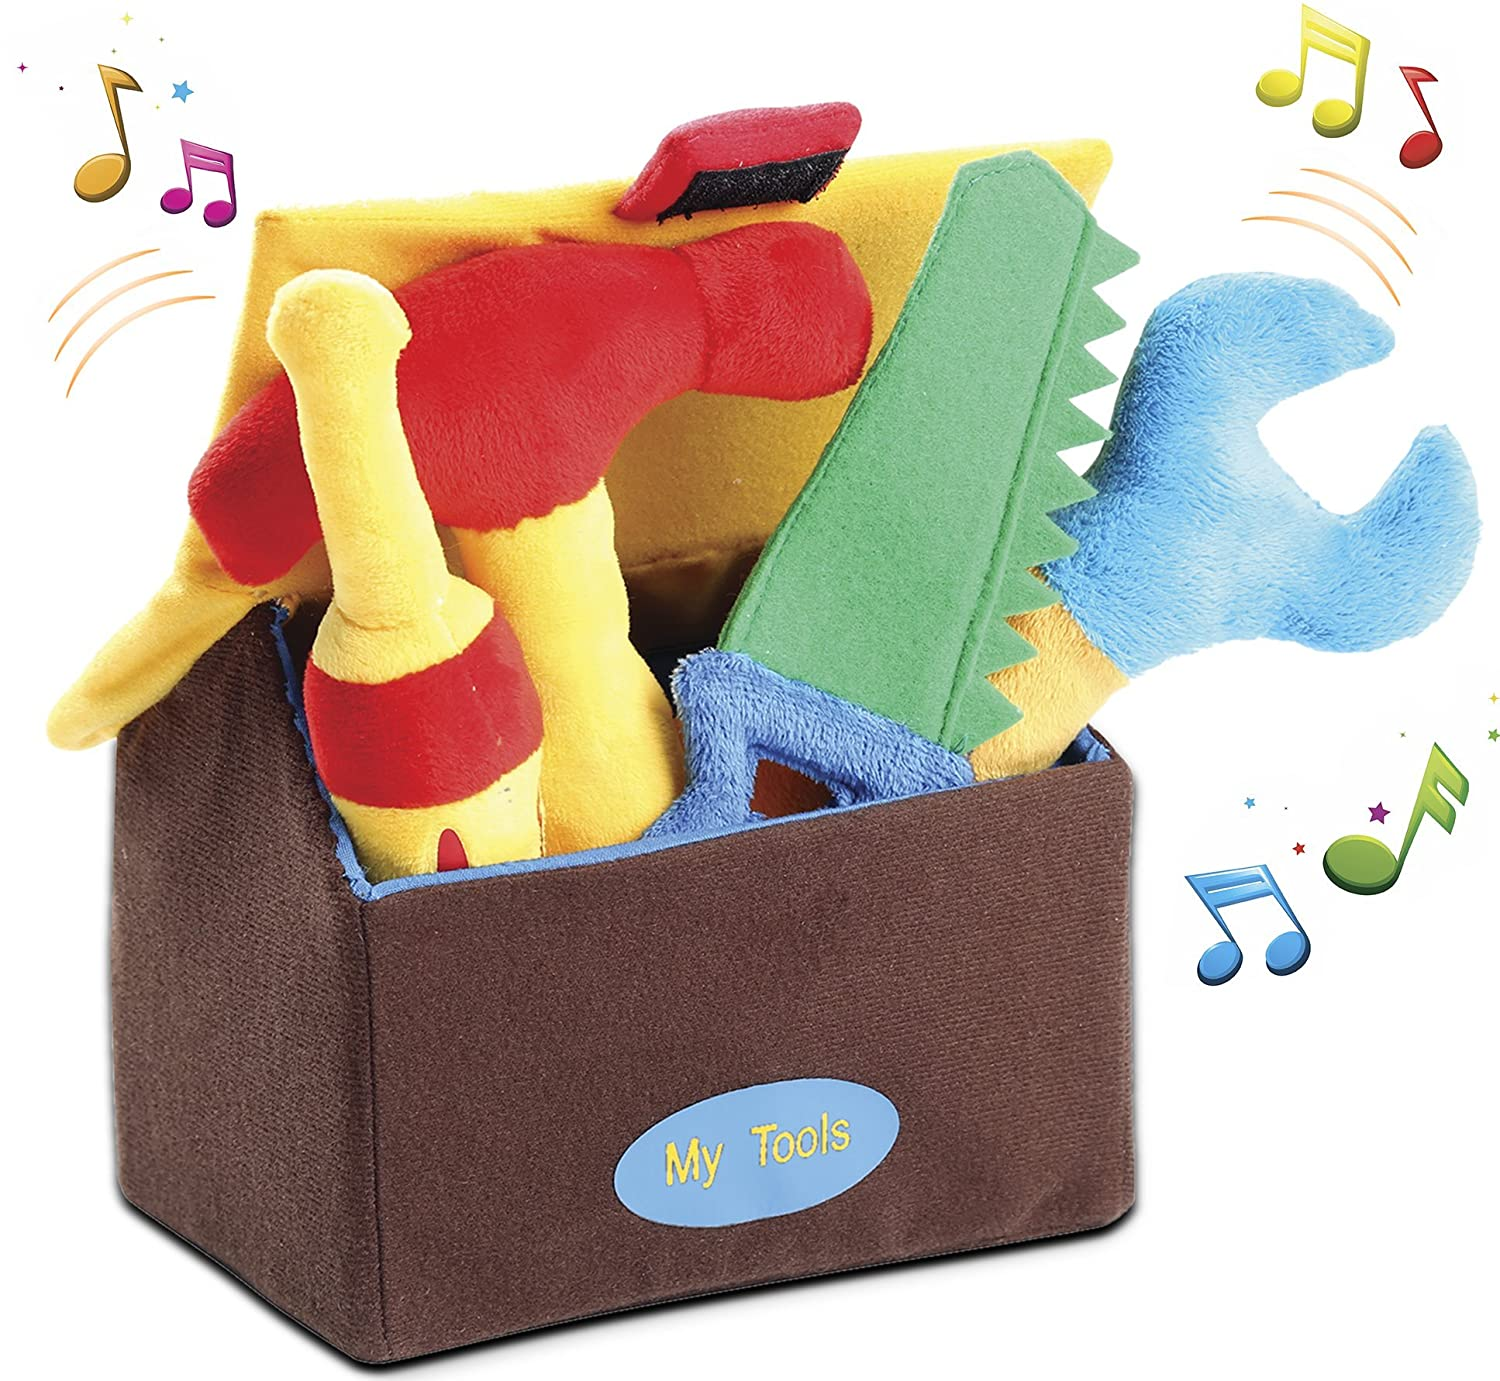 Kleeger Plush Tool Play Set for Toddlers (5 Pcs - Play's Sounds) with Carrier Box   Extra Soft & Cute Toys for Baby Boys/Girls & Pre-School Children   Great Gift Idea